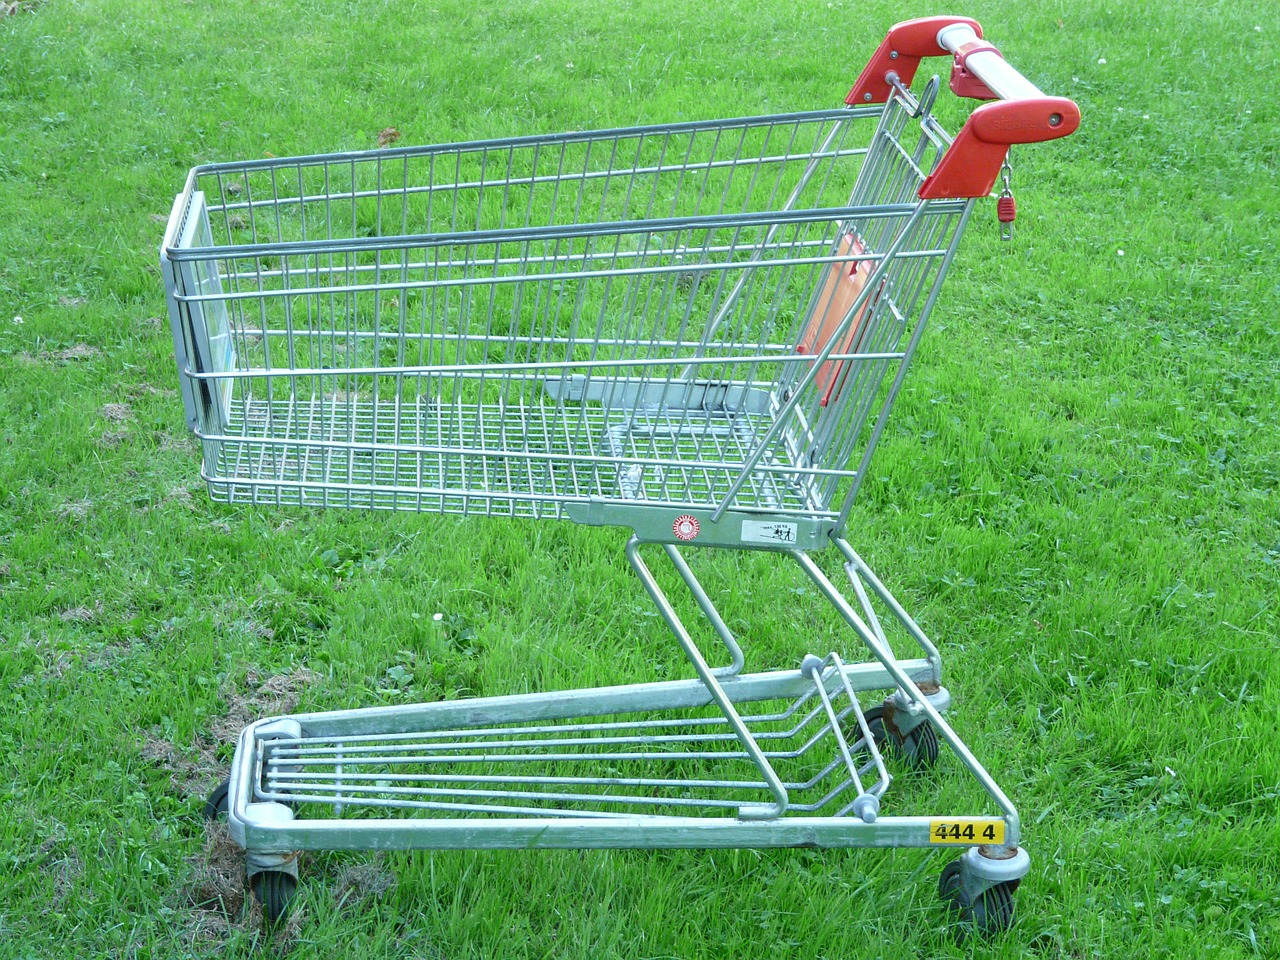 shopping cart photo by Hans via Pixabay